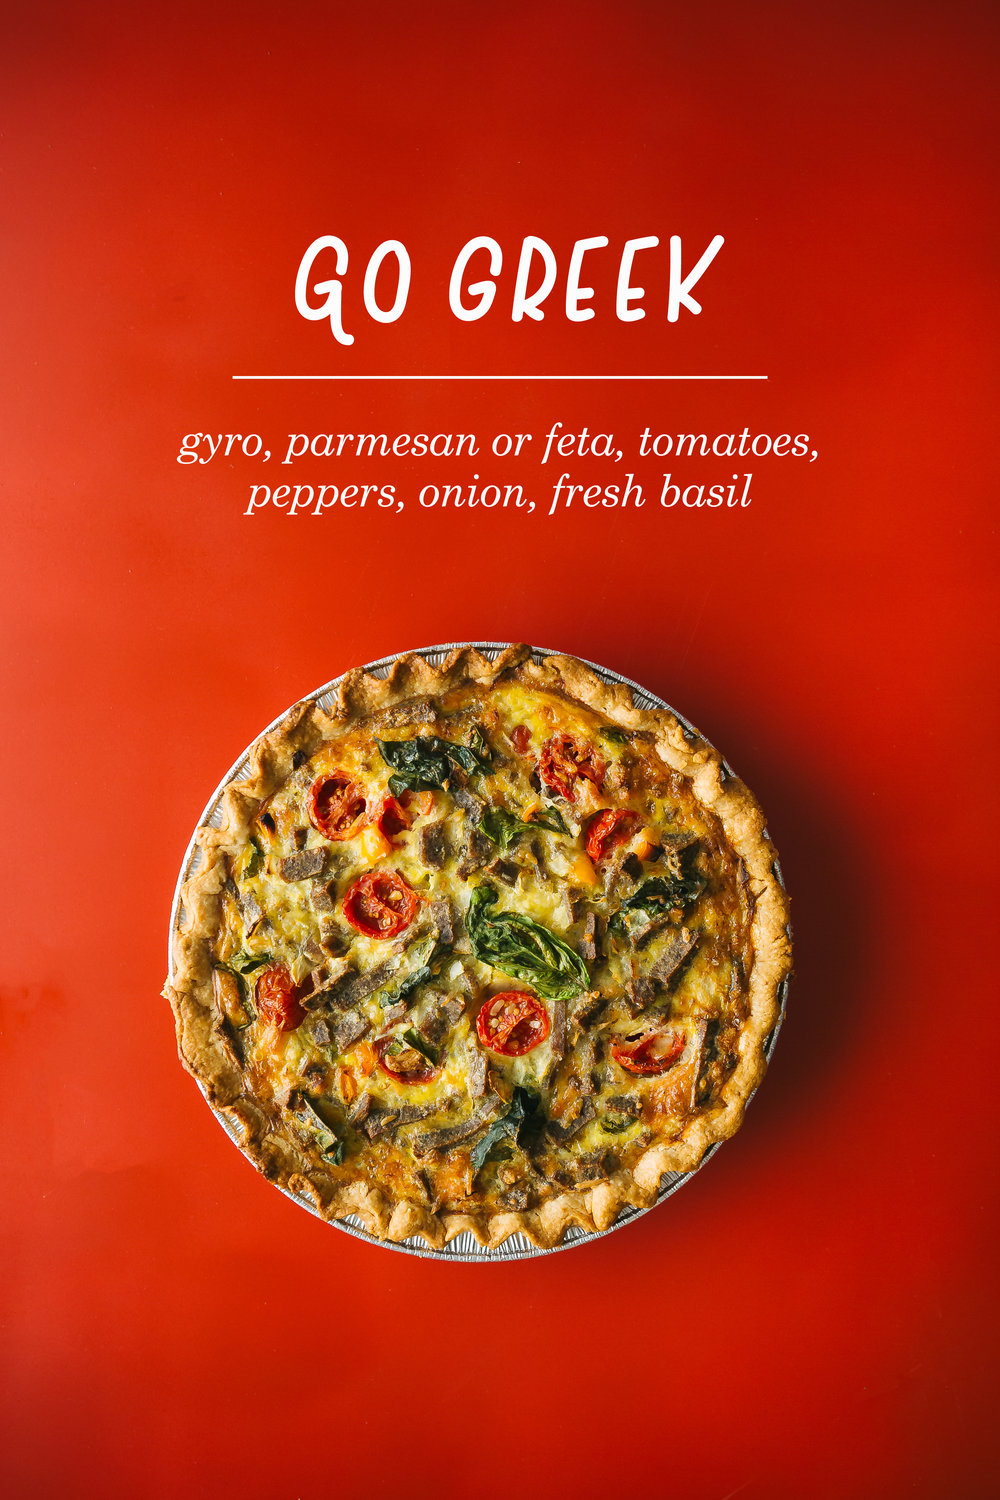 Quiche - Greek.jpg